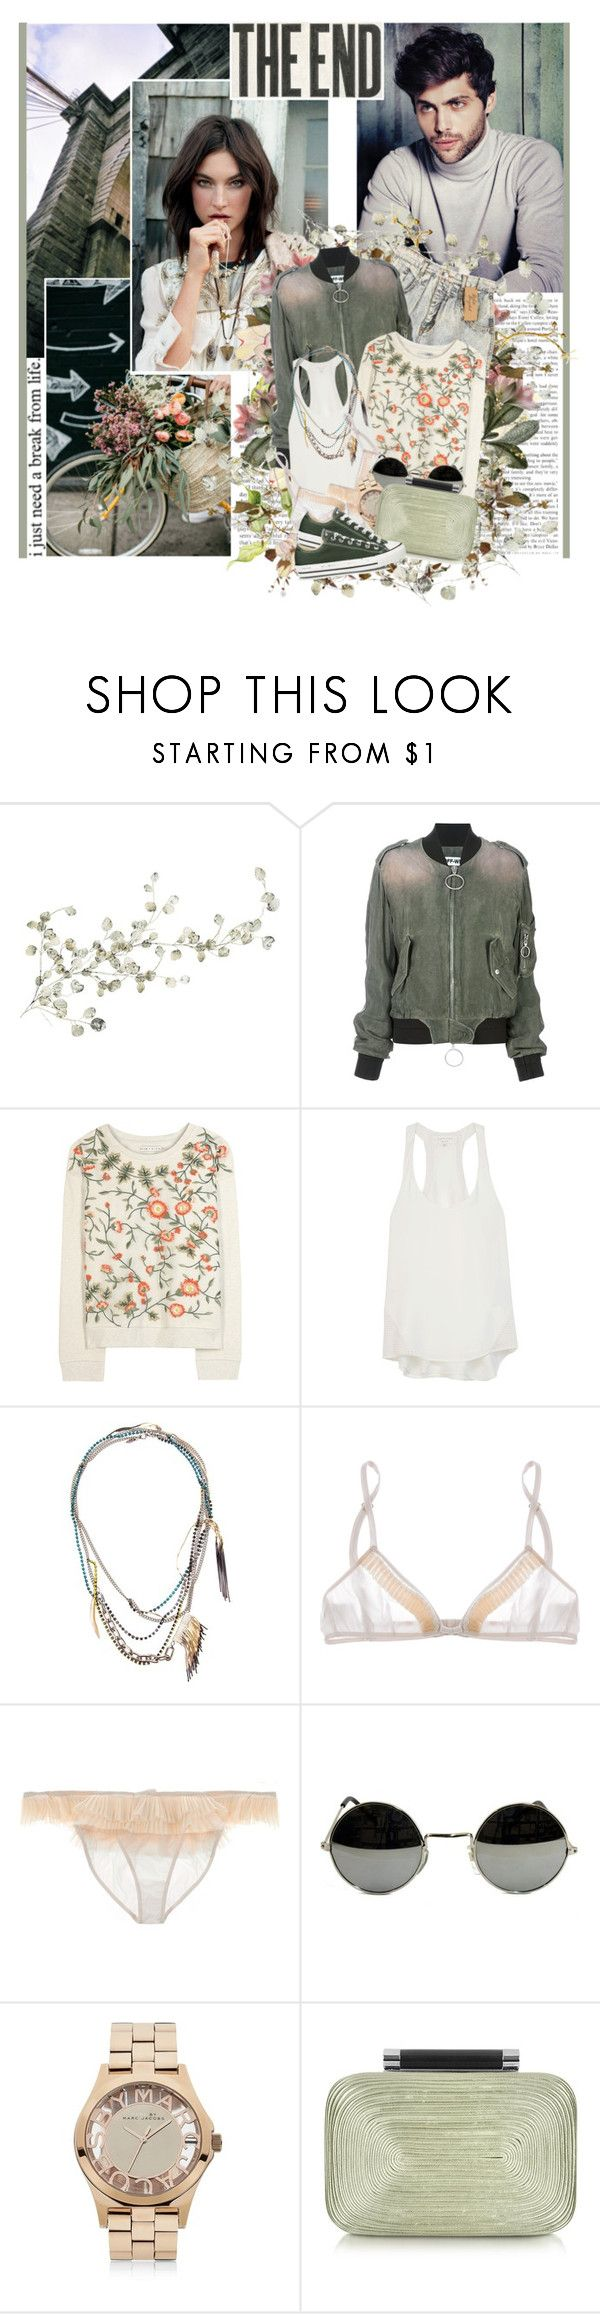 """""""I do my make up in somebody else's car we, order different drinks at the same bars"""" by winfreda ❤ liked on Polyvore featuring WALL, Off-White, Alice + Olivia, rag & bone, Iosselliani, Miu Miu, Marc by Marc Jacobs, Diane Von Furstenberg and Converse"""